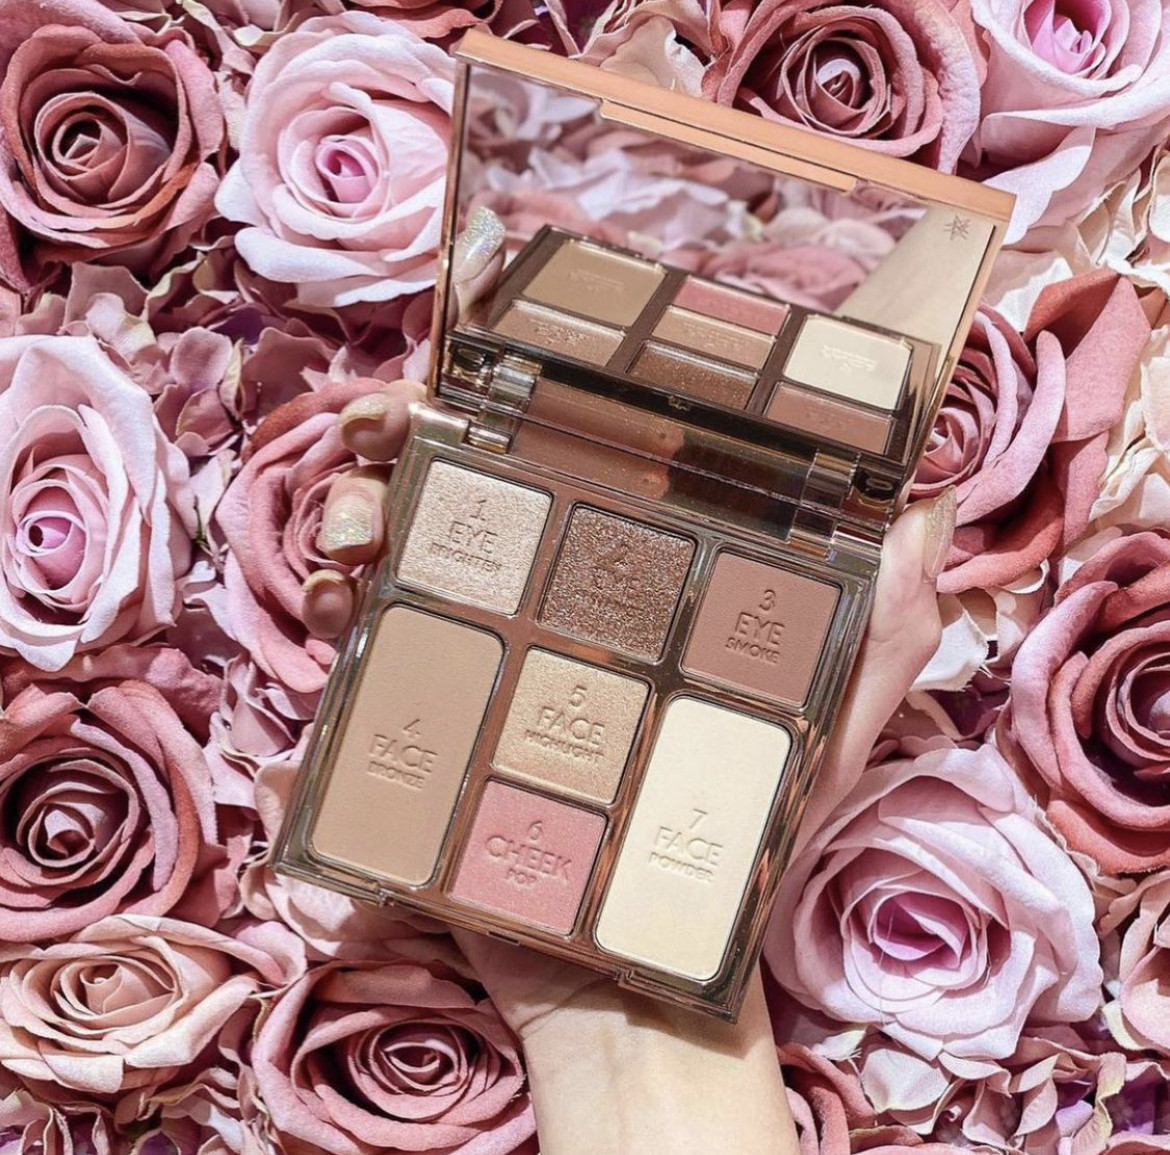 Палетка для лица Charlotte Tilbury Instant Look of Love in Palette Pretty Blushed Beauty